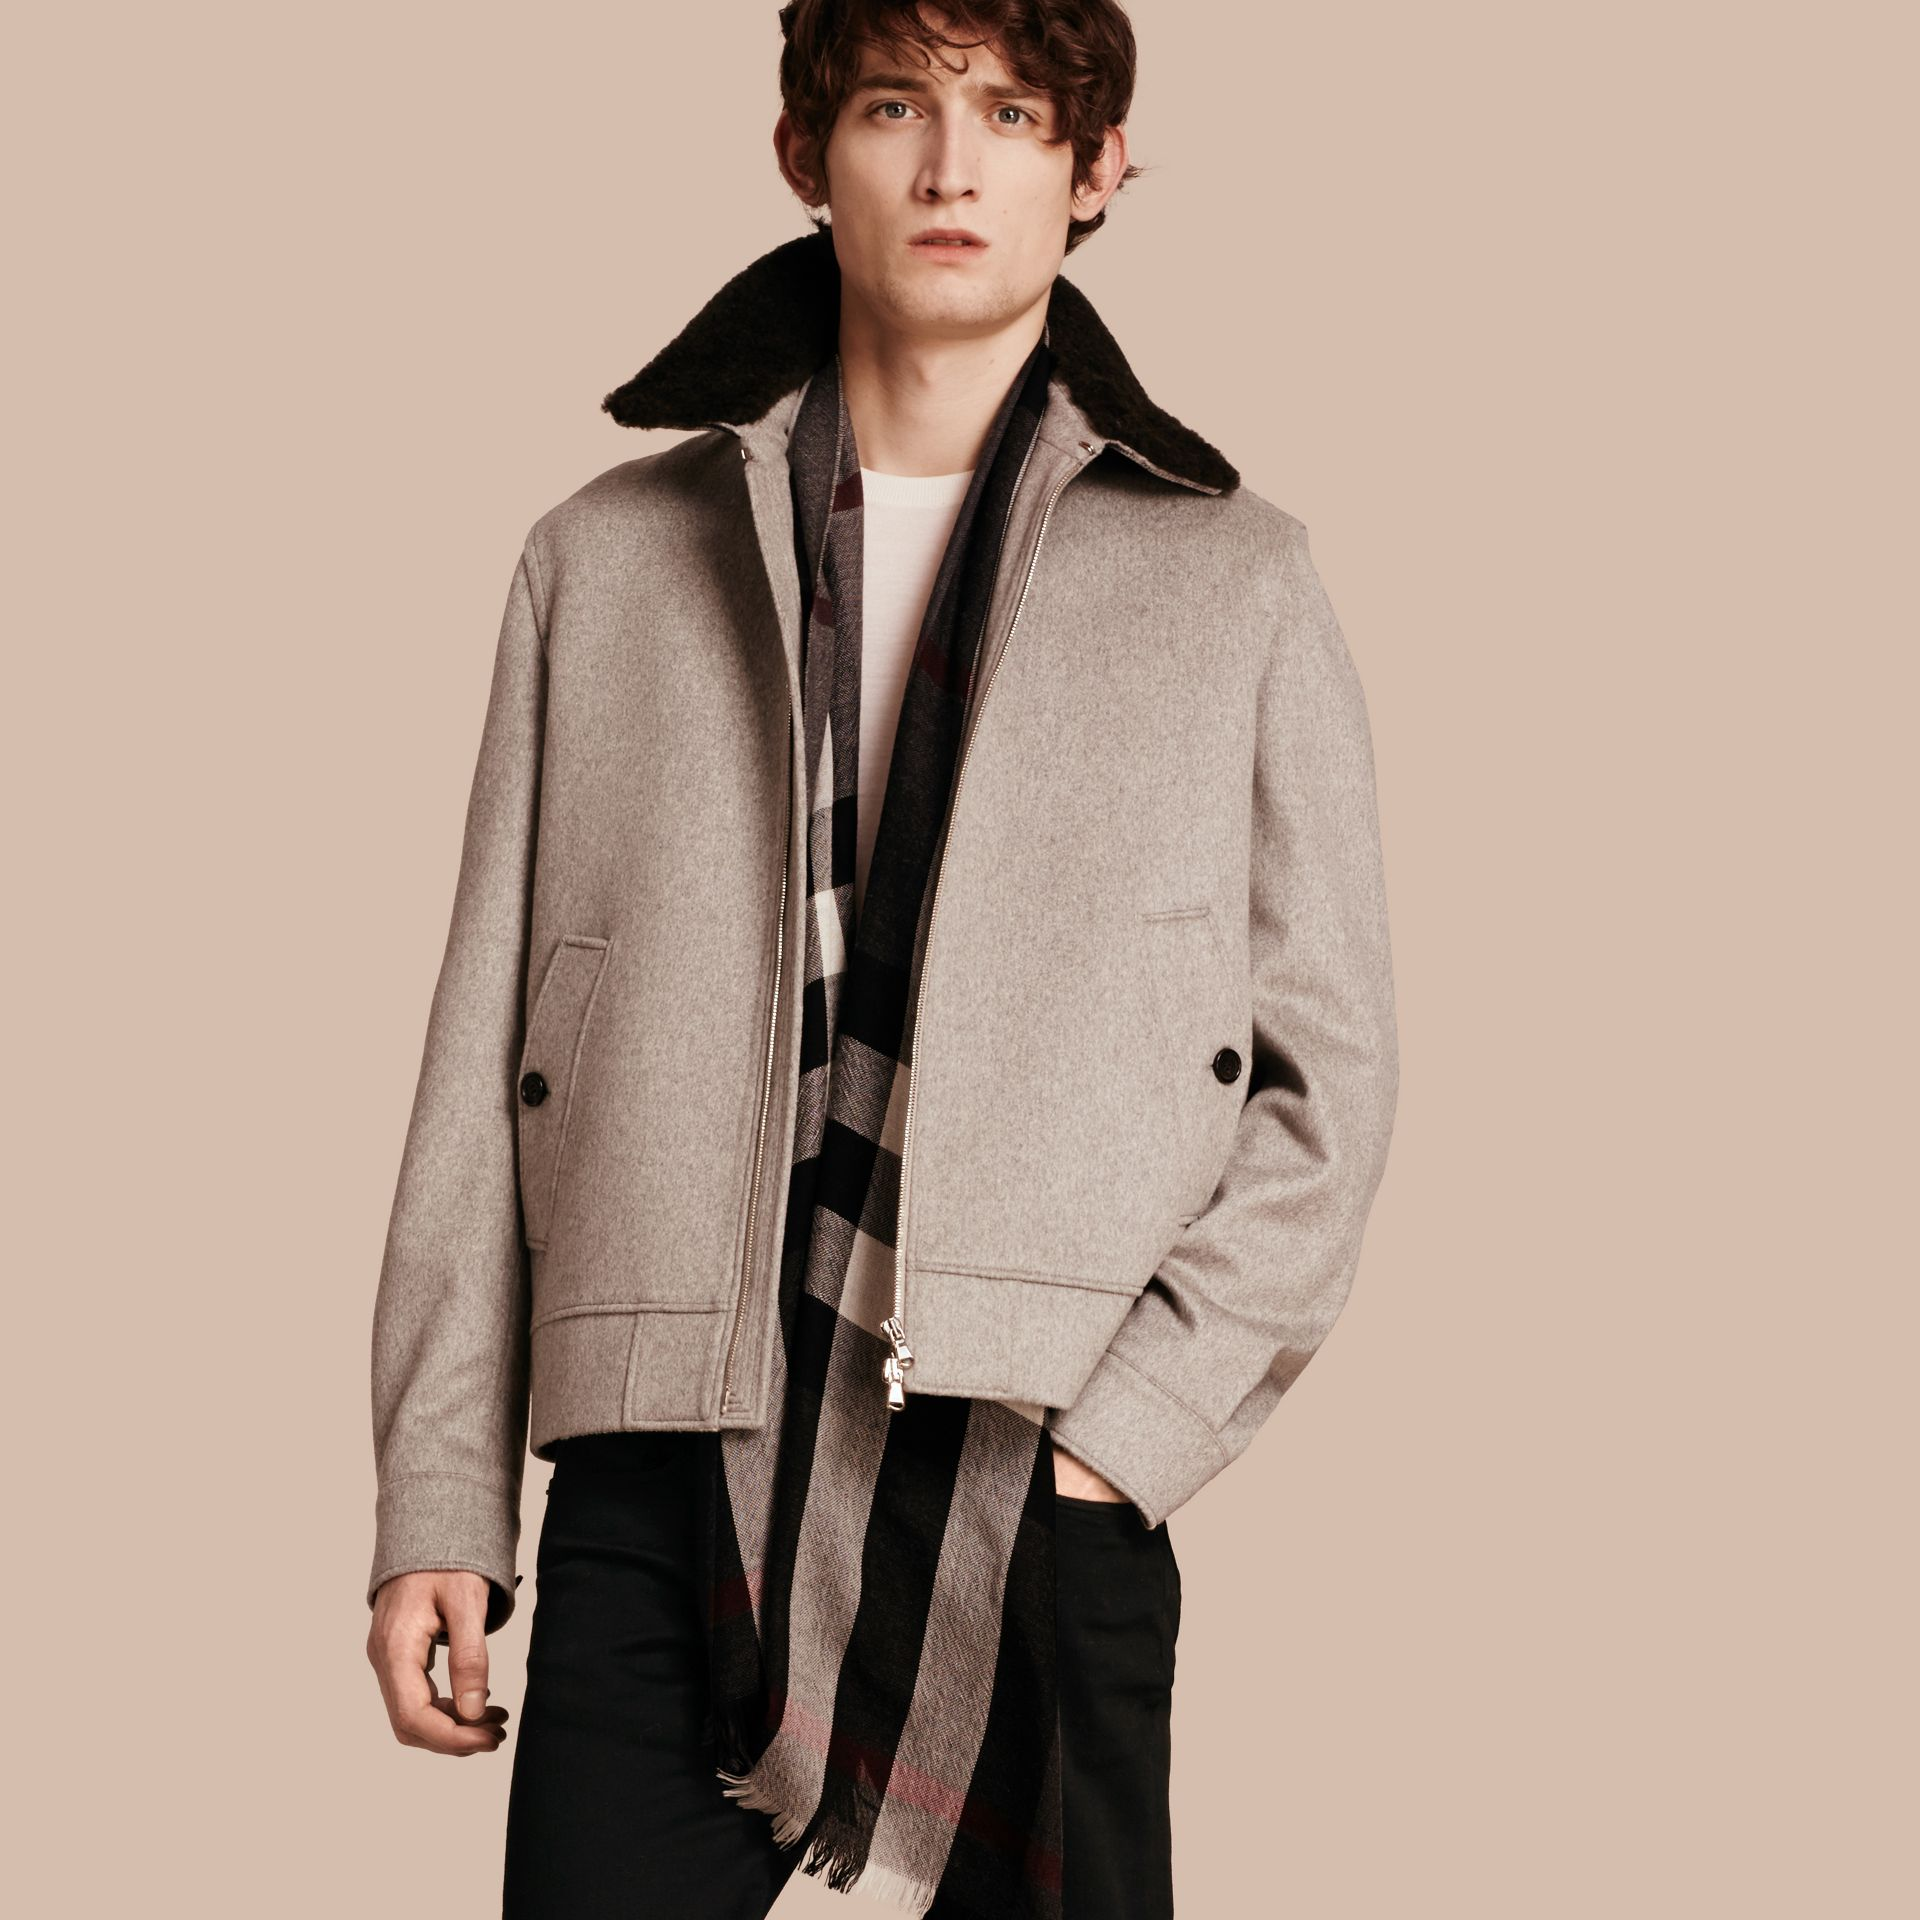 Pale grey melange Cashmere Jacket with Detachable Shearling Collar - gallery image 1